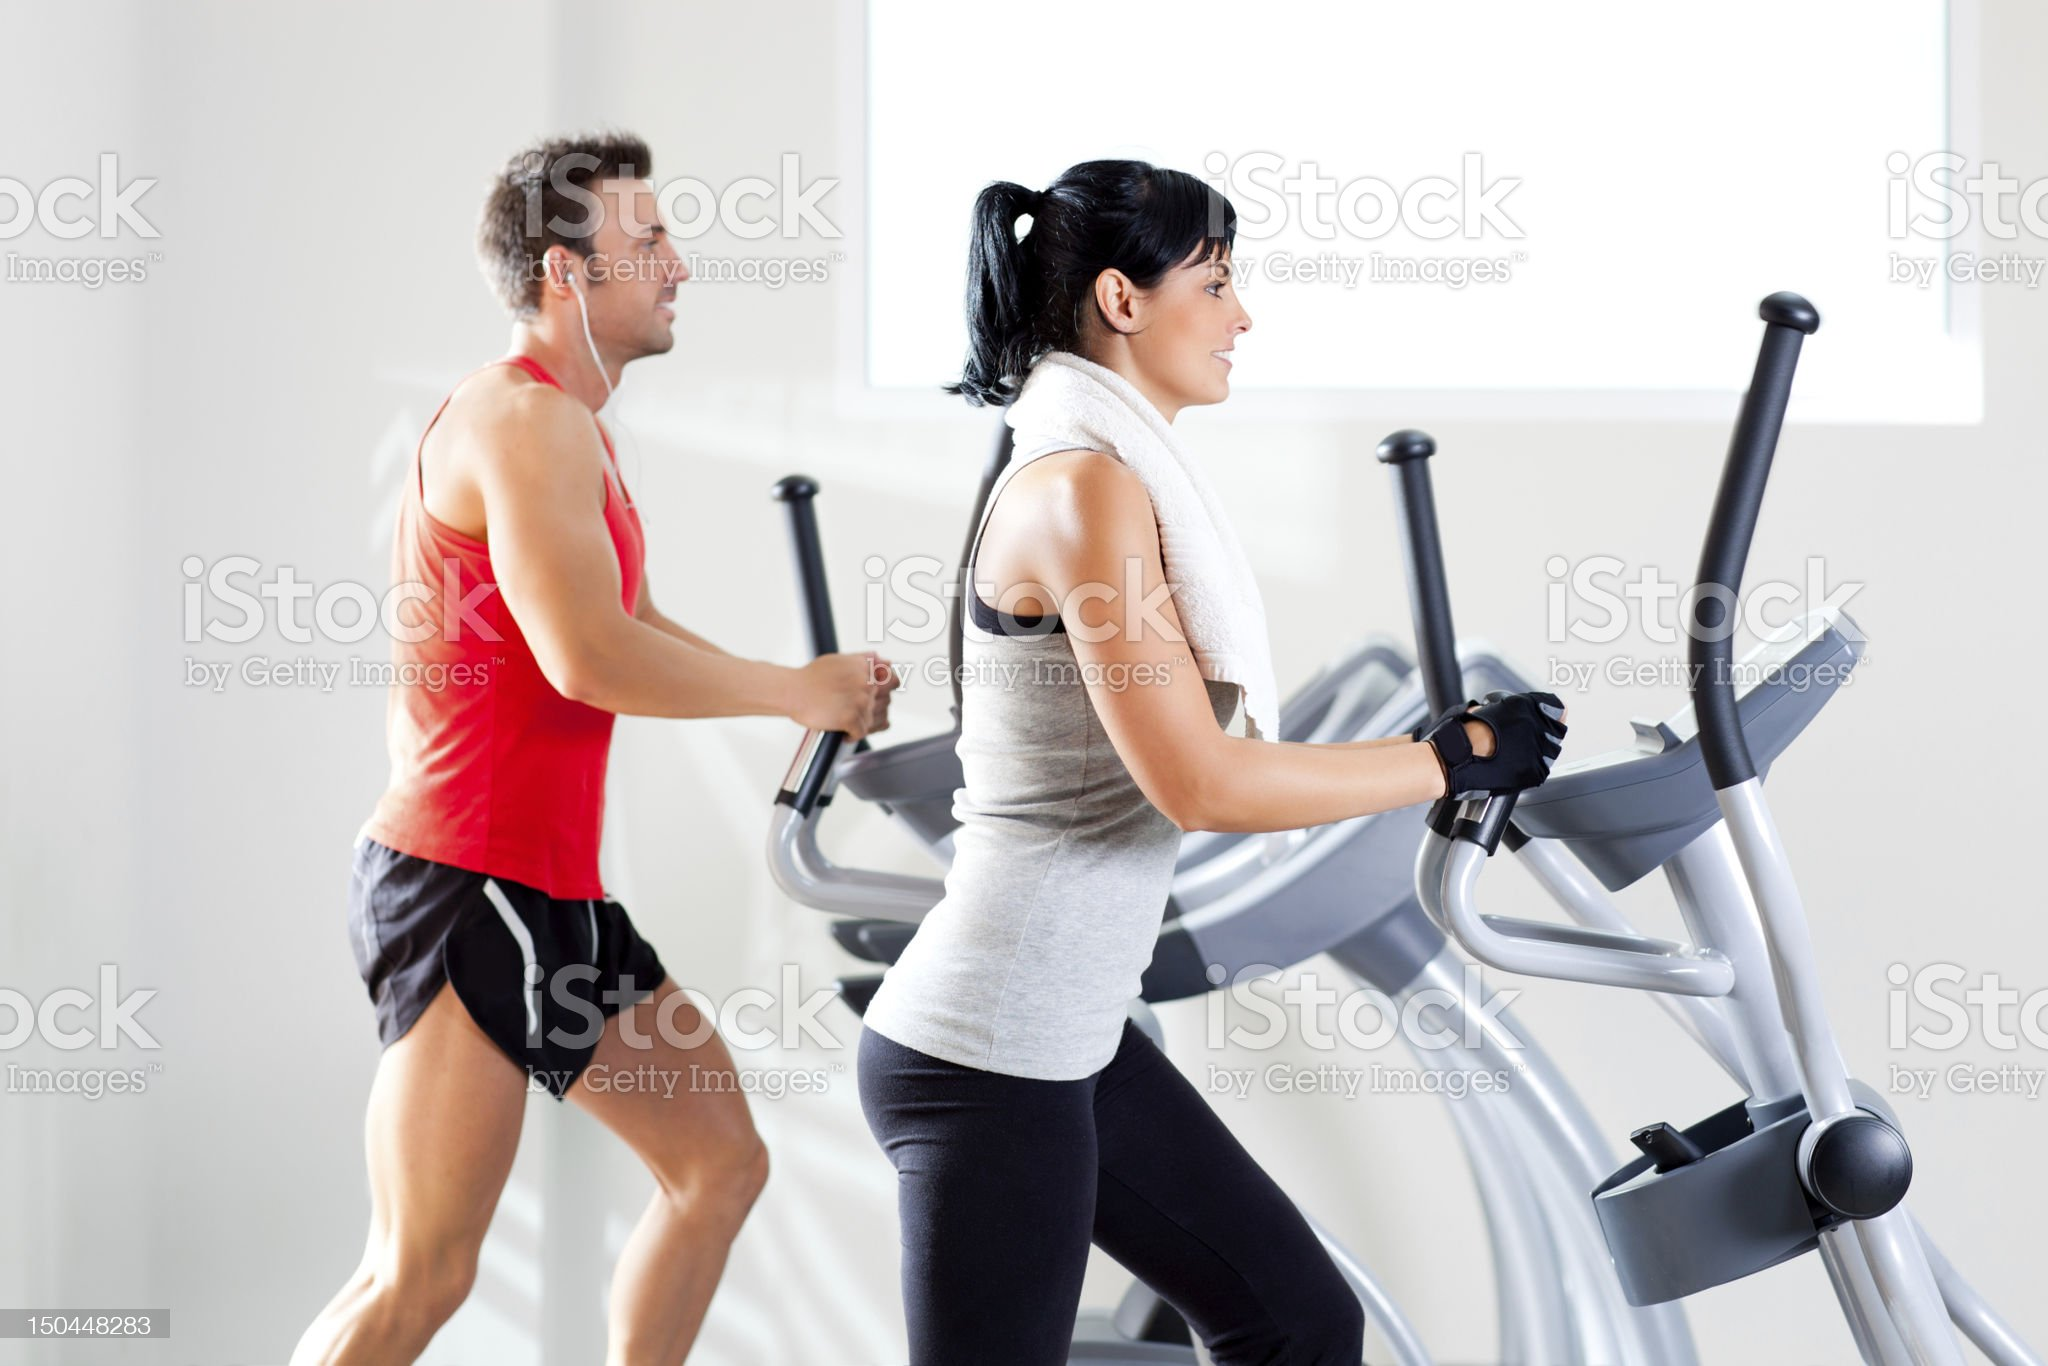 A man and woman using elliptical machines at the gym royalty-free stock photo